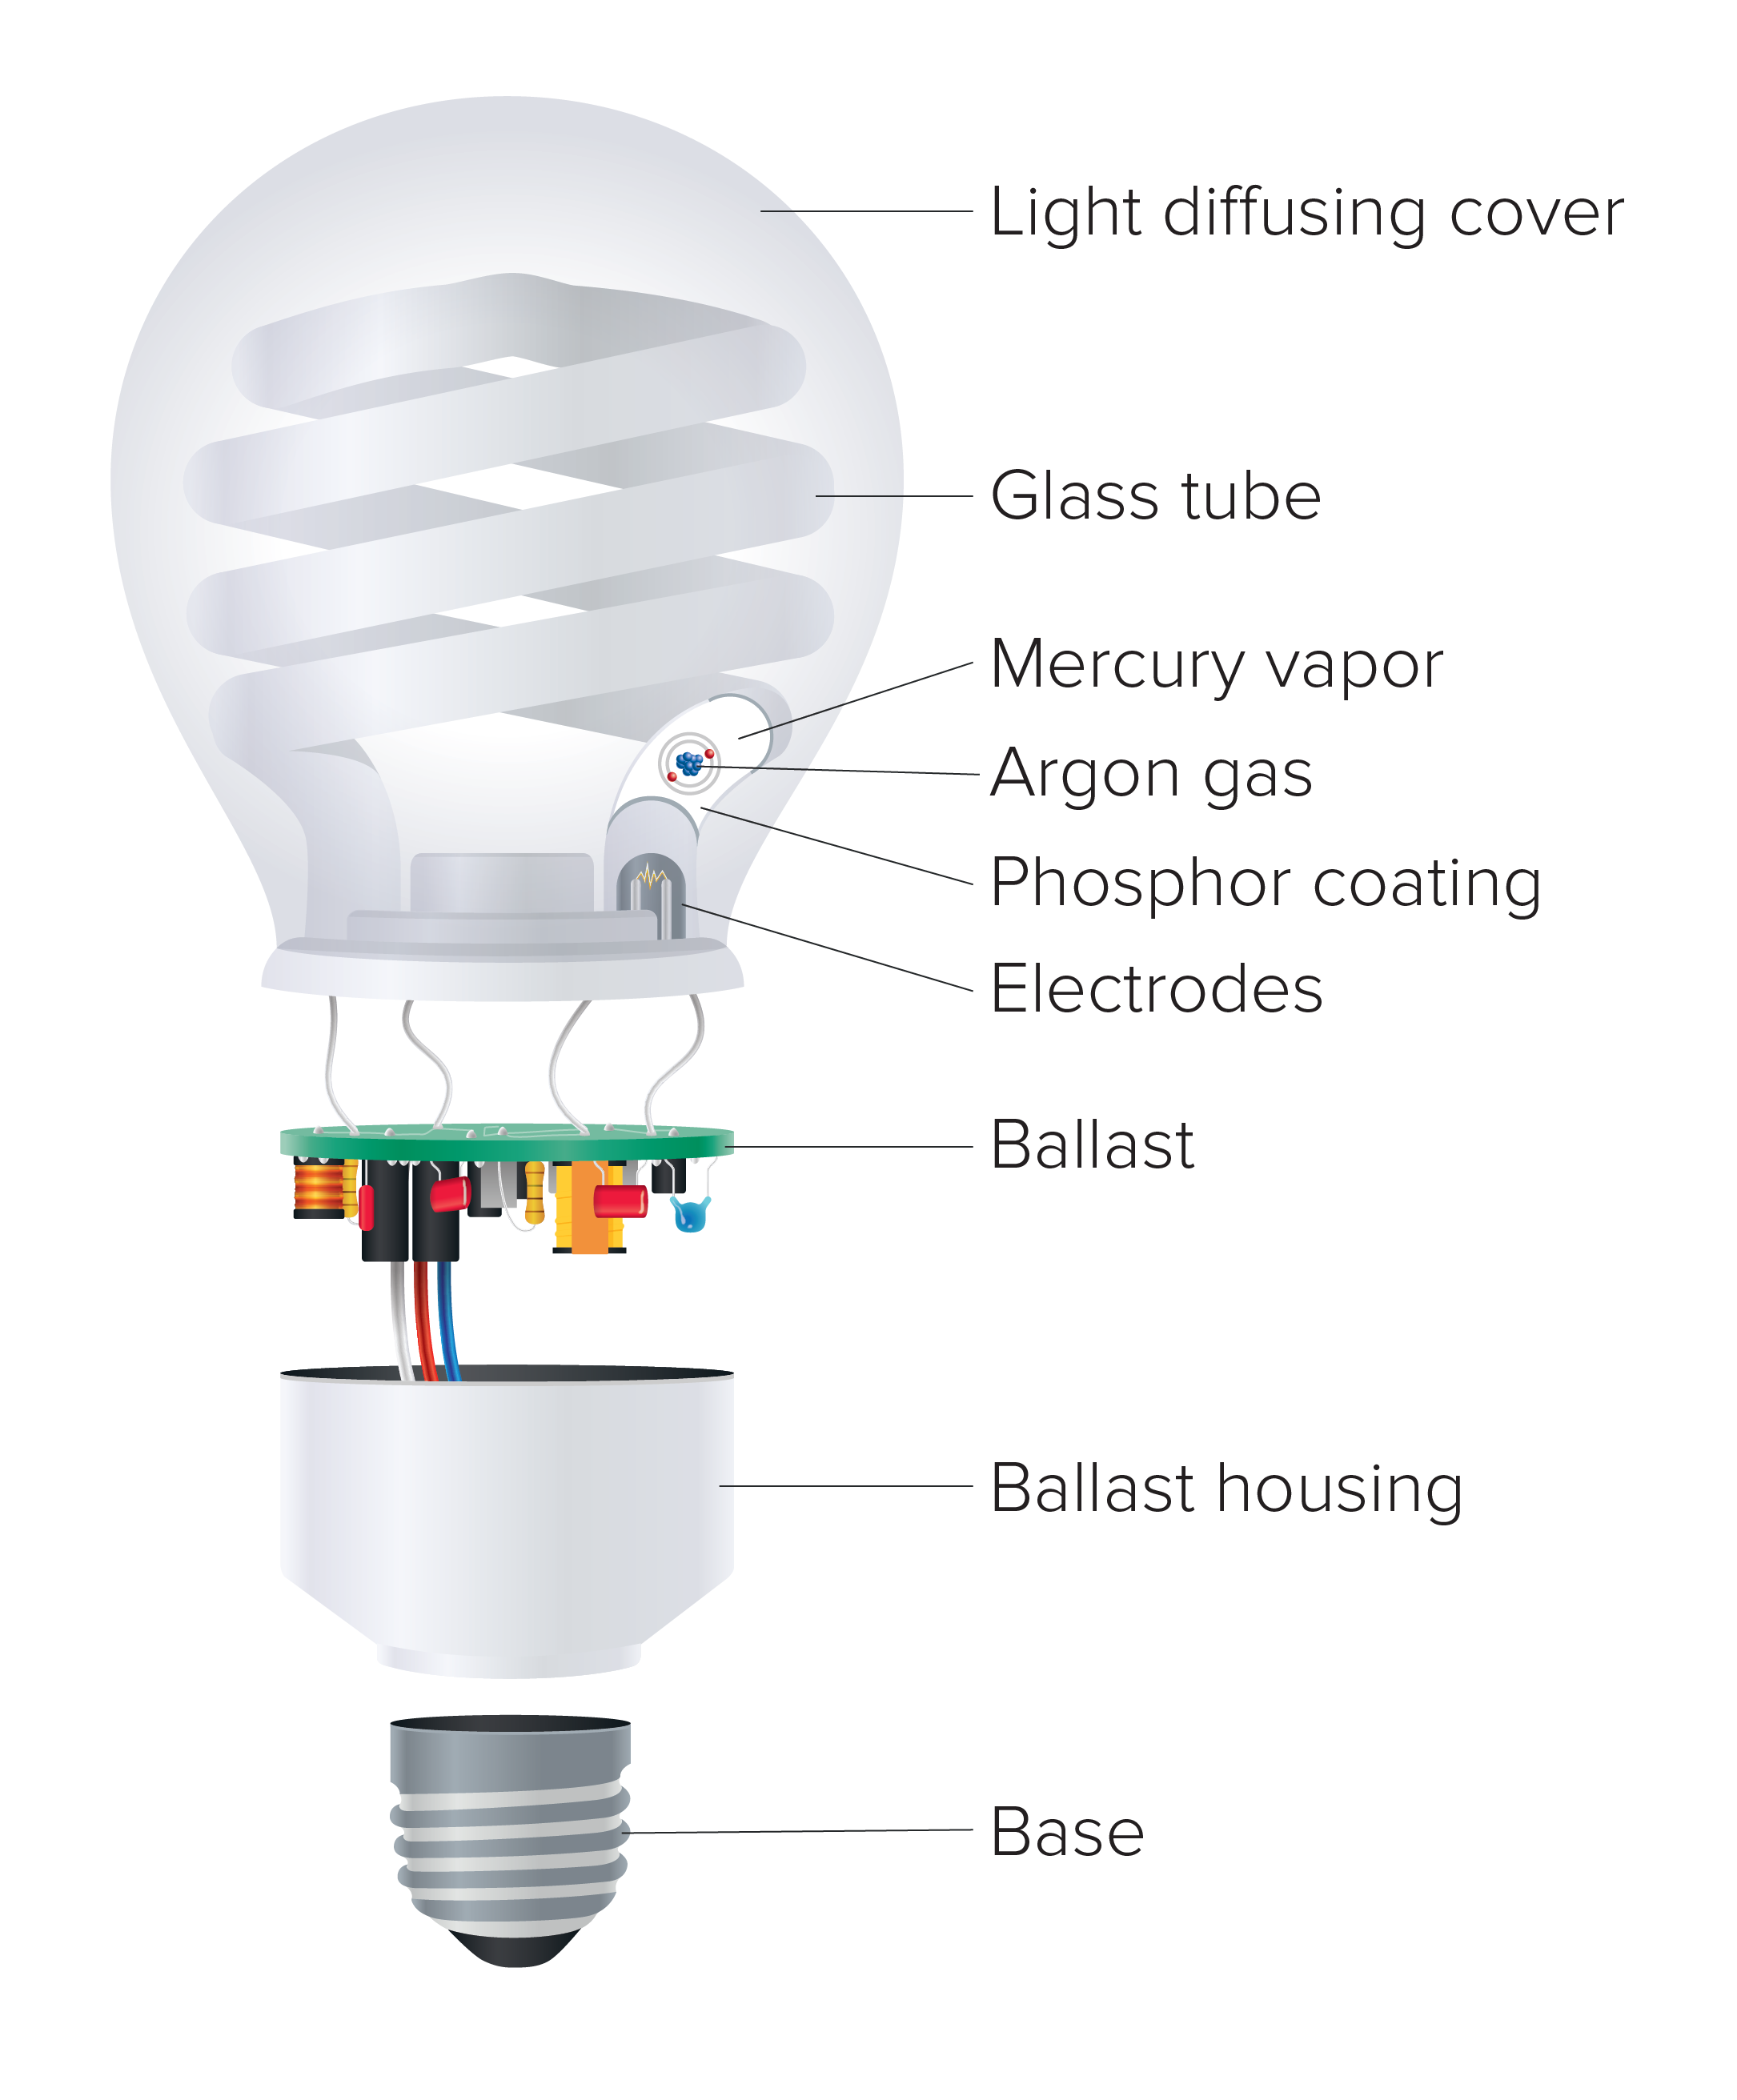 What Are Cfl Bulbs And Where Should They Be Used